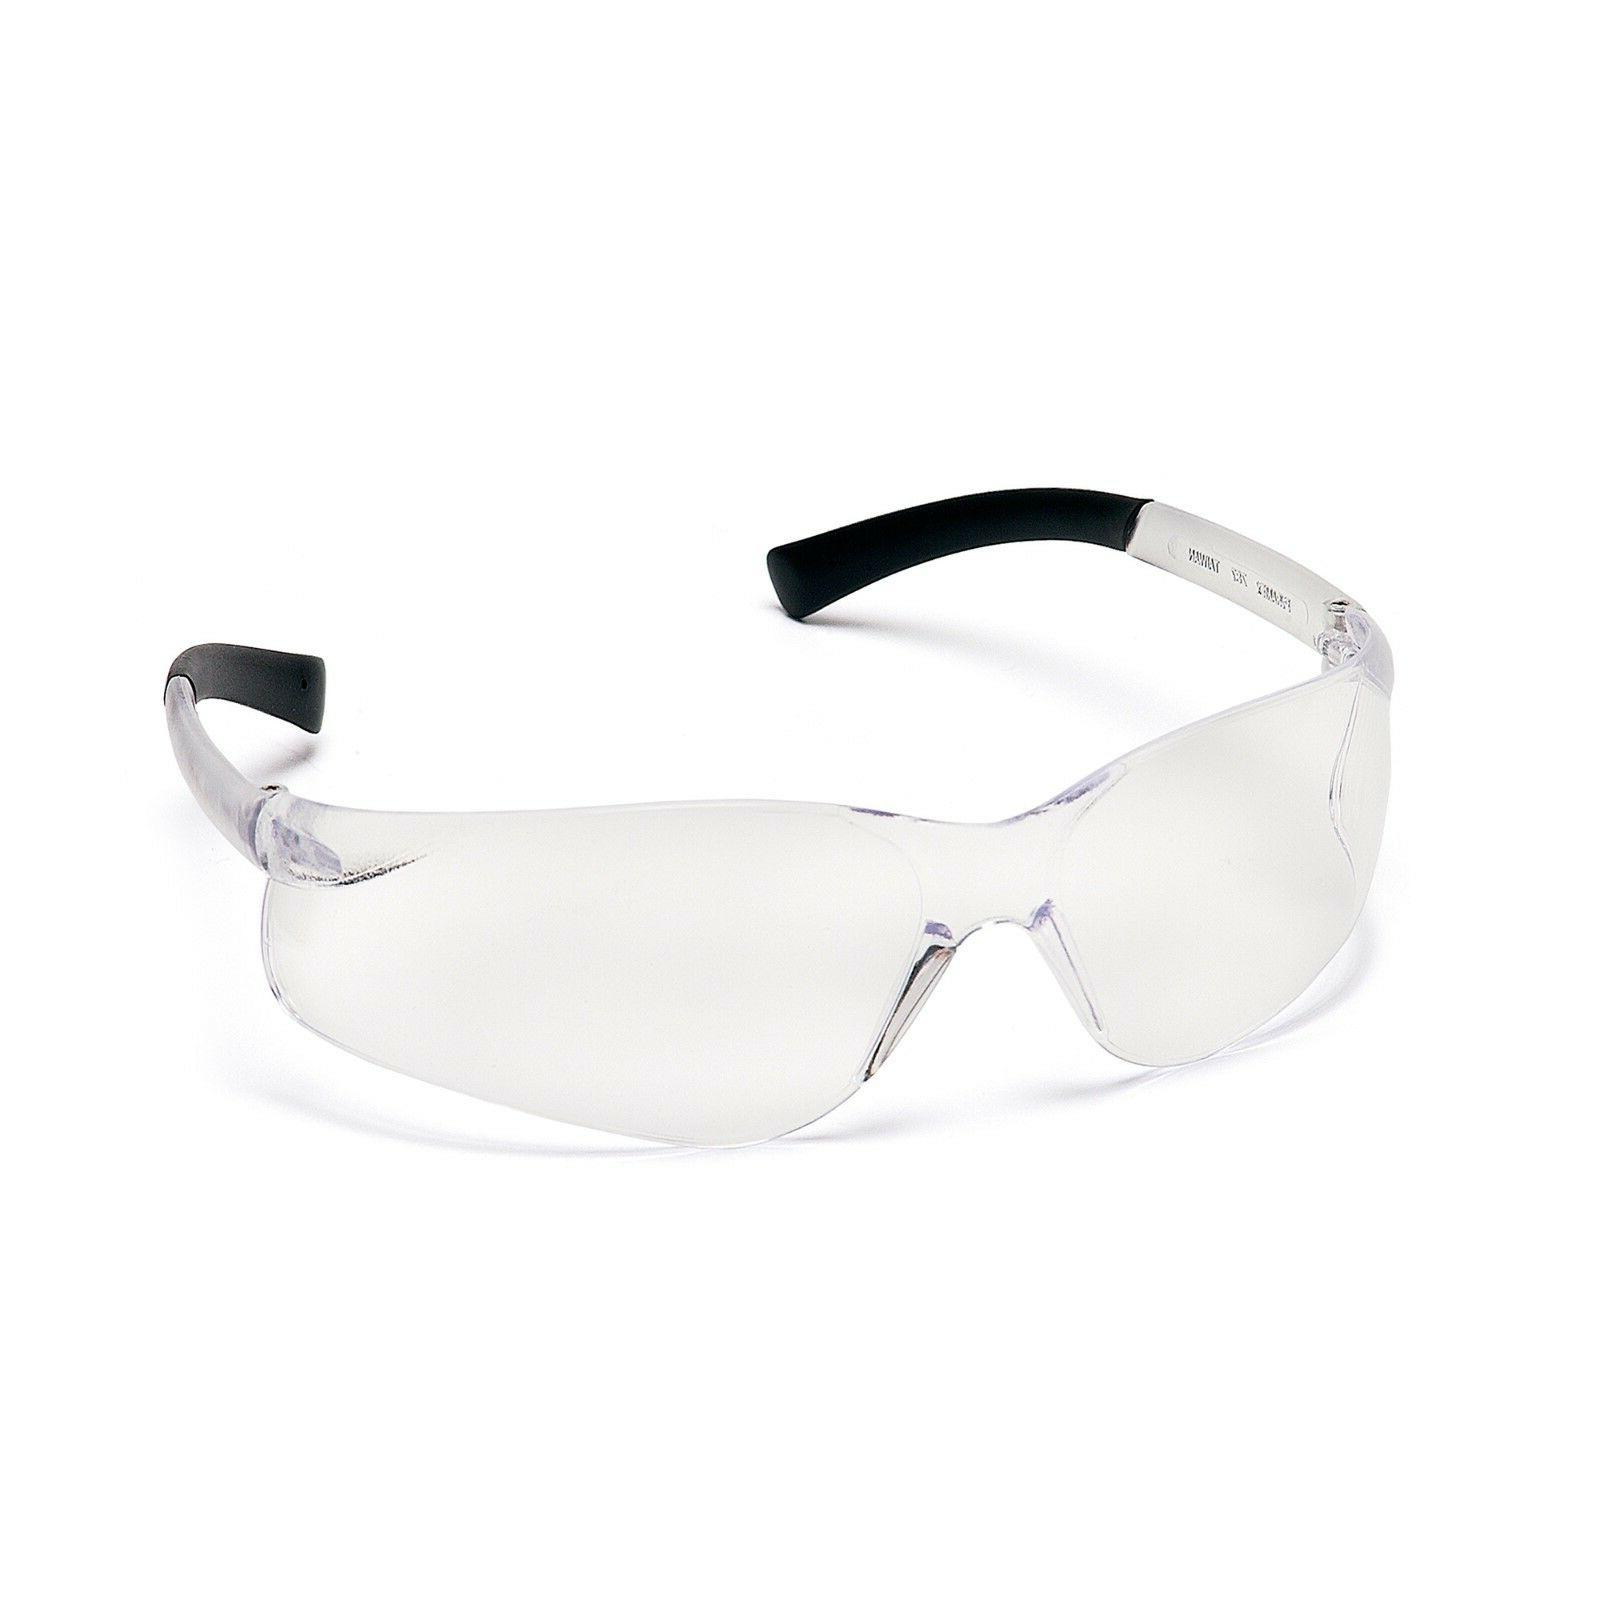 ztek safety eyewear clear lens with clear